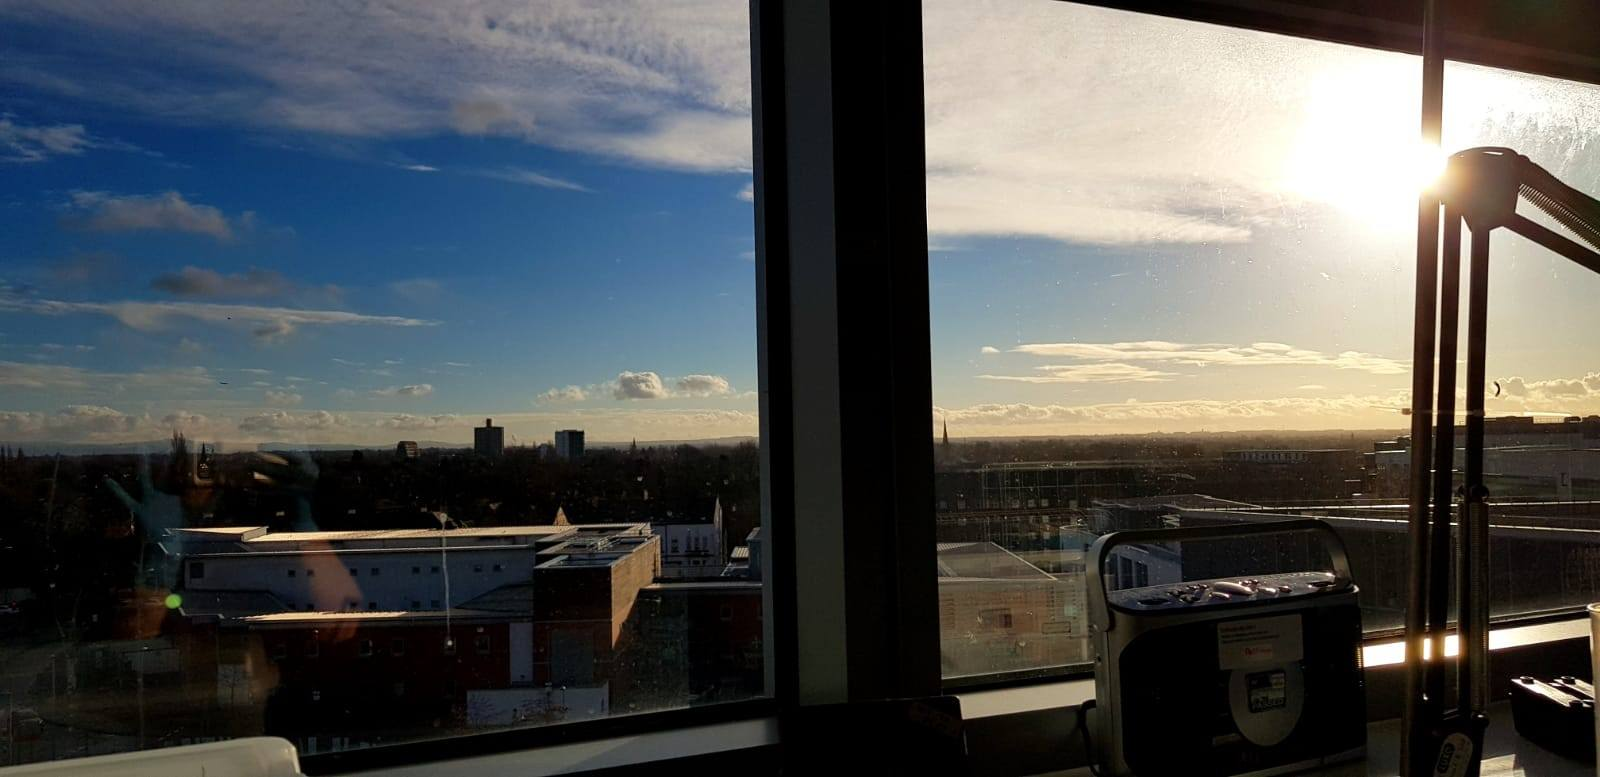 View from the window in my lab